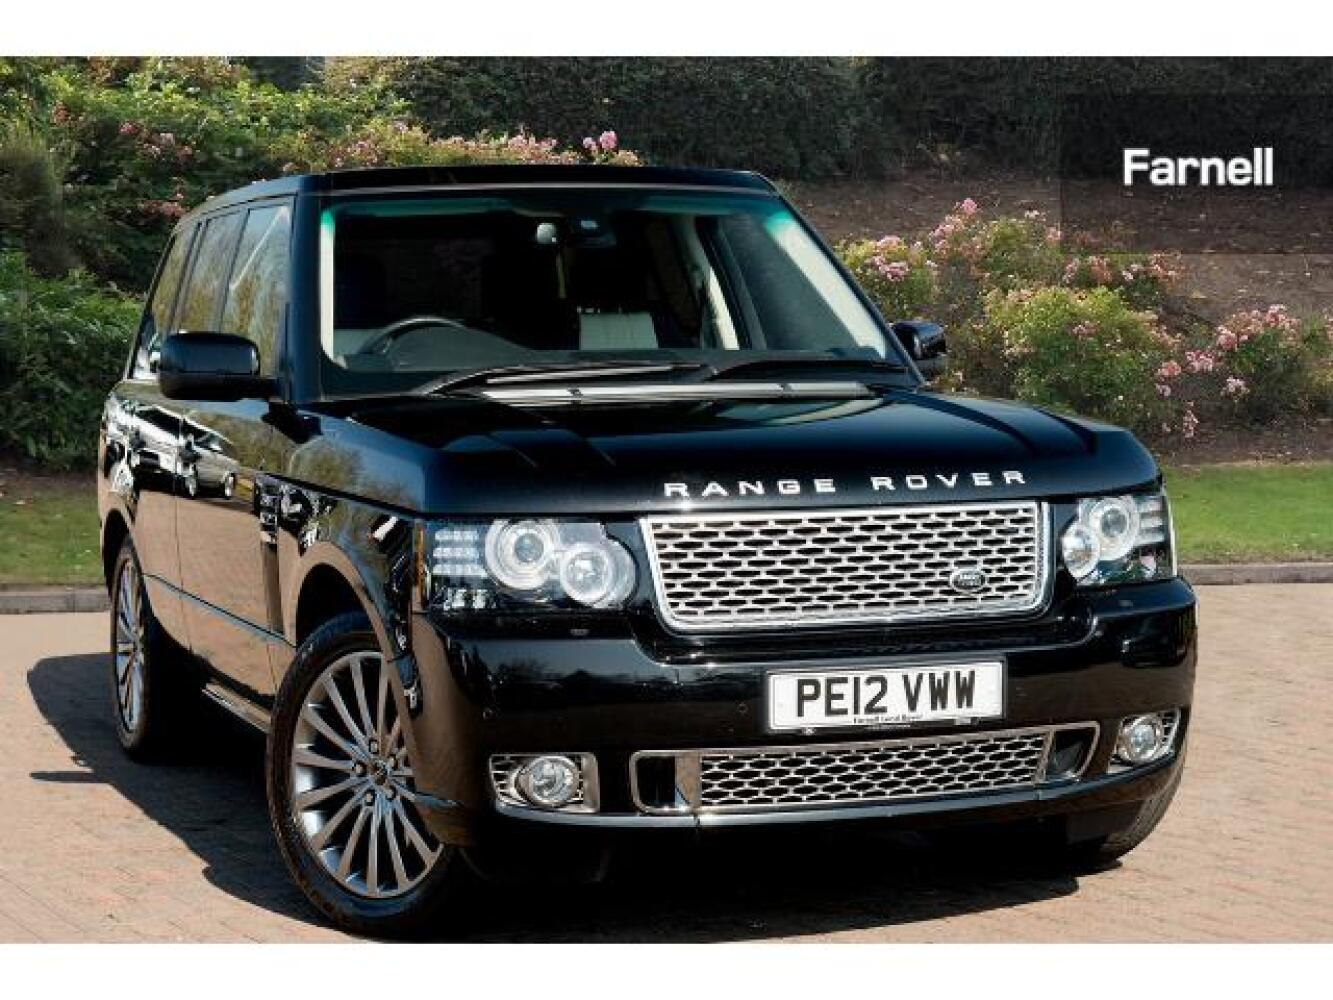 used land rover range rover 4 4 tdv8 autobiography 4dr auto diesel estate for sale farnell. Black Bedroom Furniture Sets. Home Design Ideas